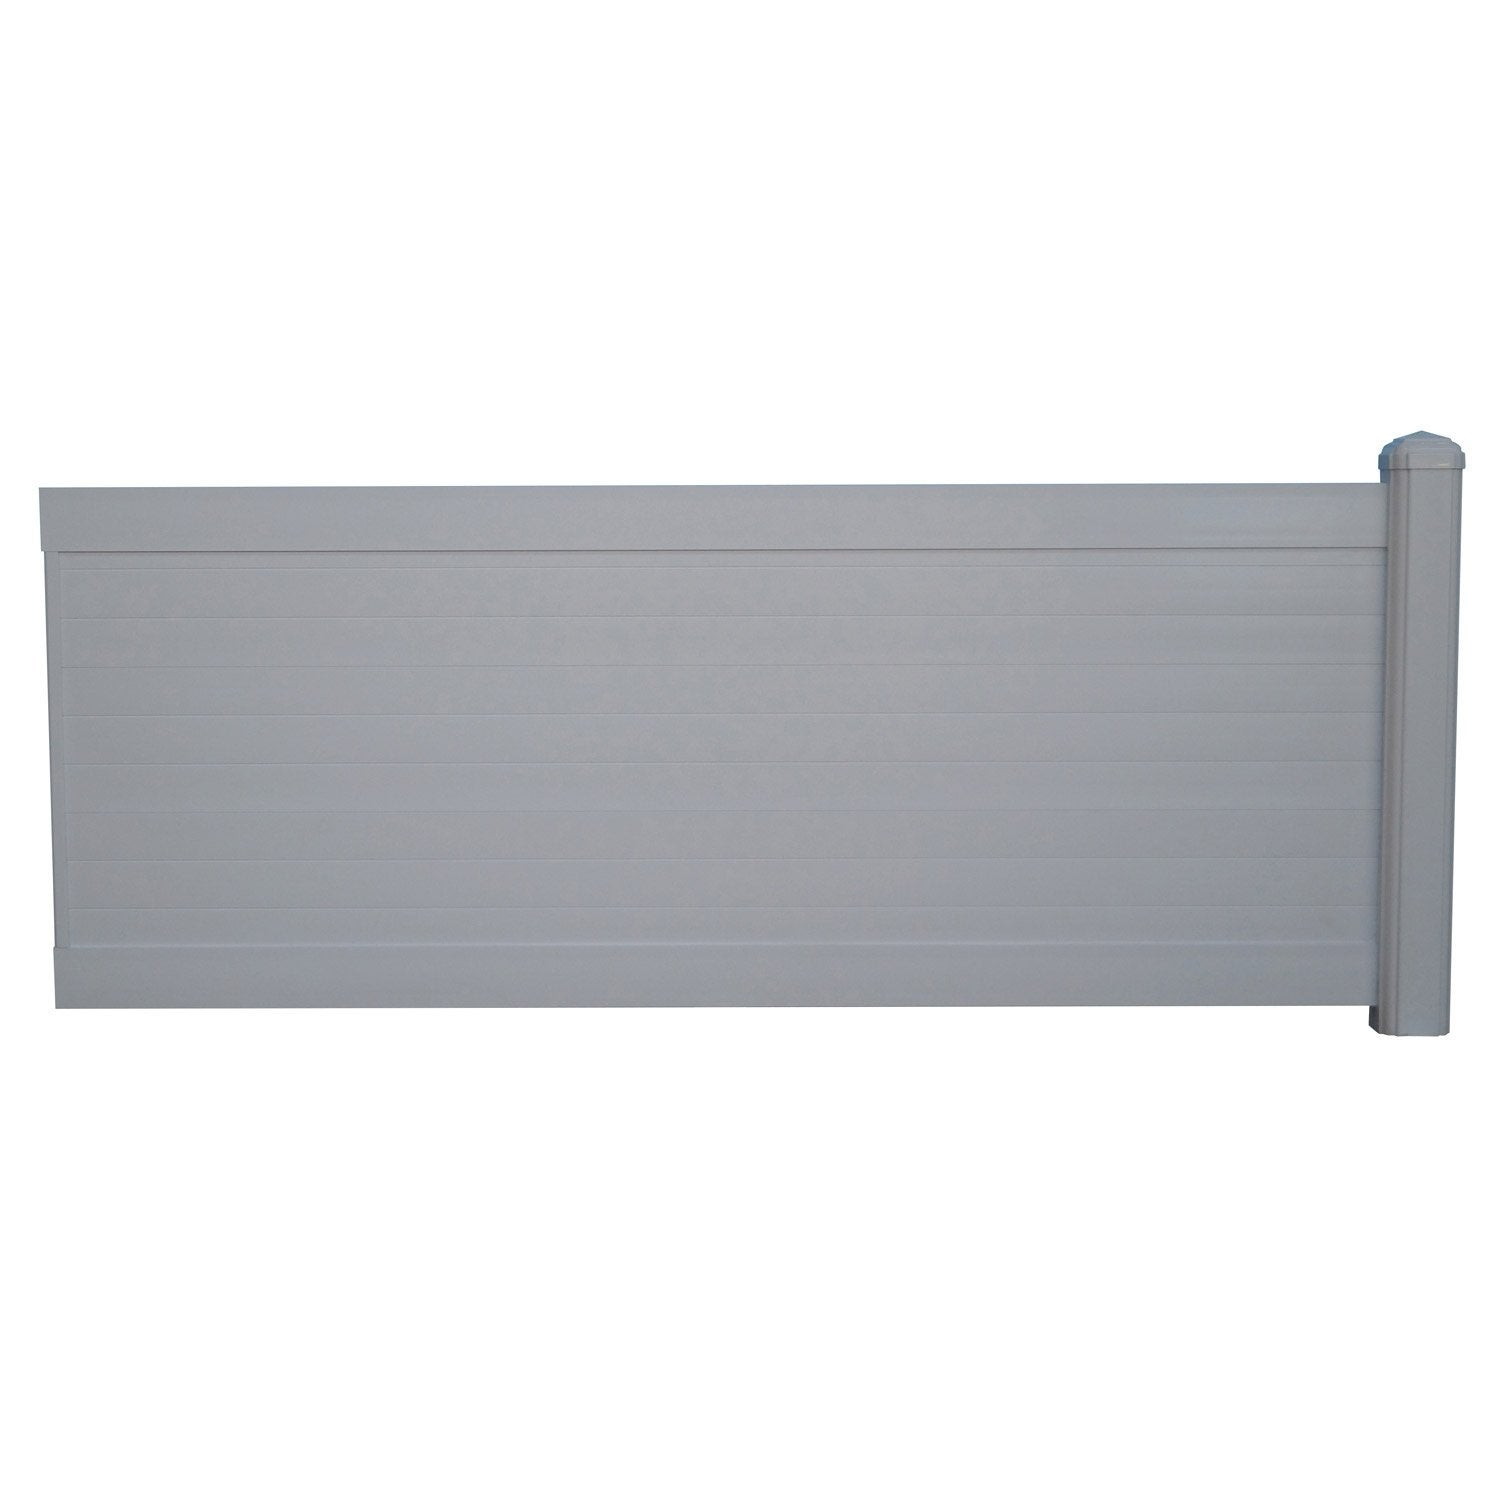 Cl ture pvc europe blanc x cm leroy merlin - Canvas pvc leroy merlin ...